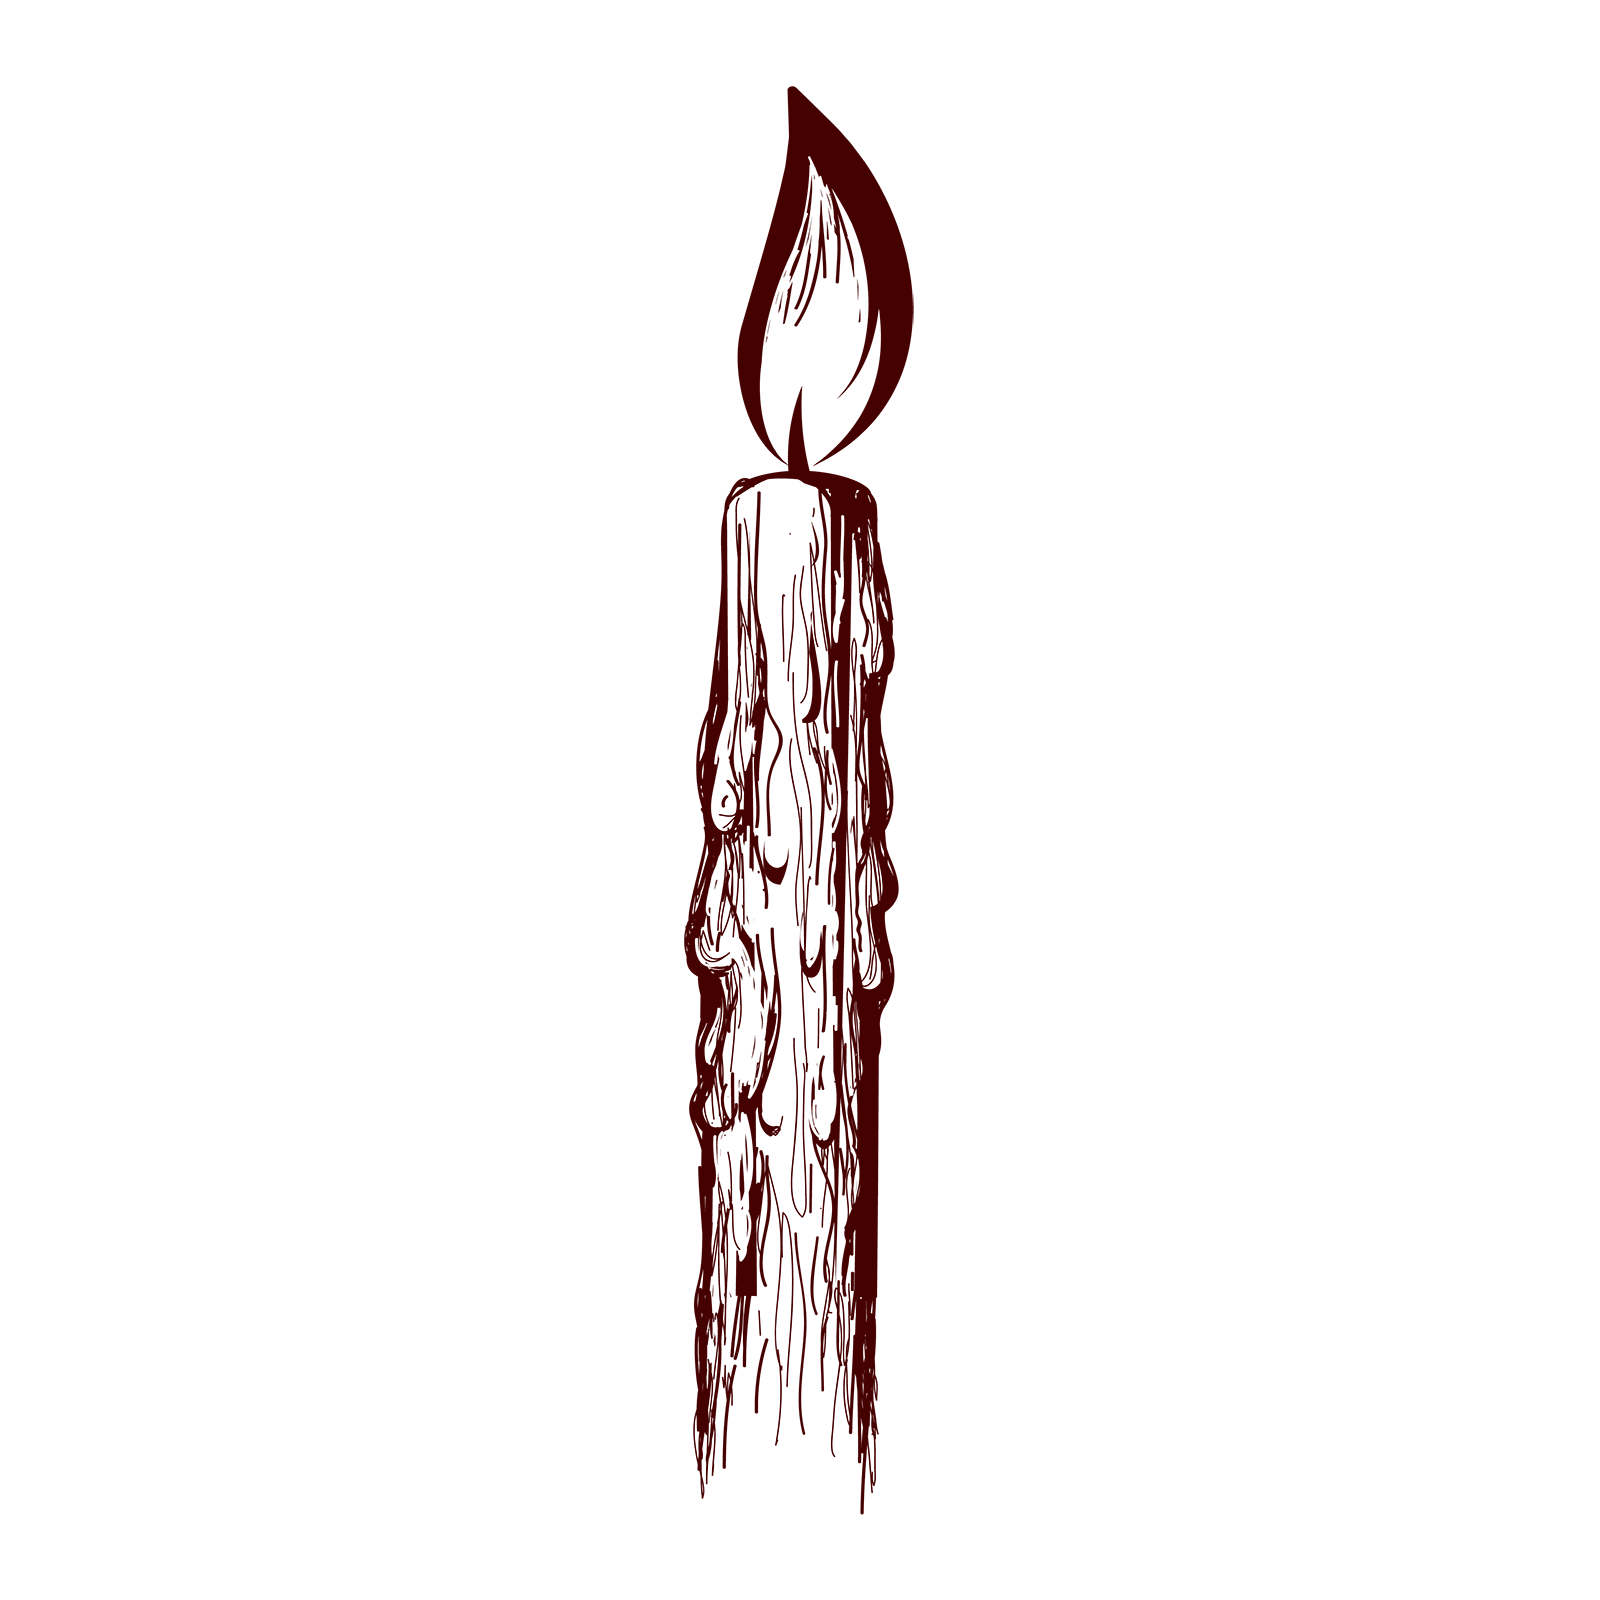 An illustration of a lit candle, dripping wax.